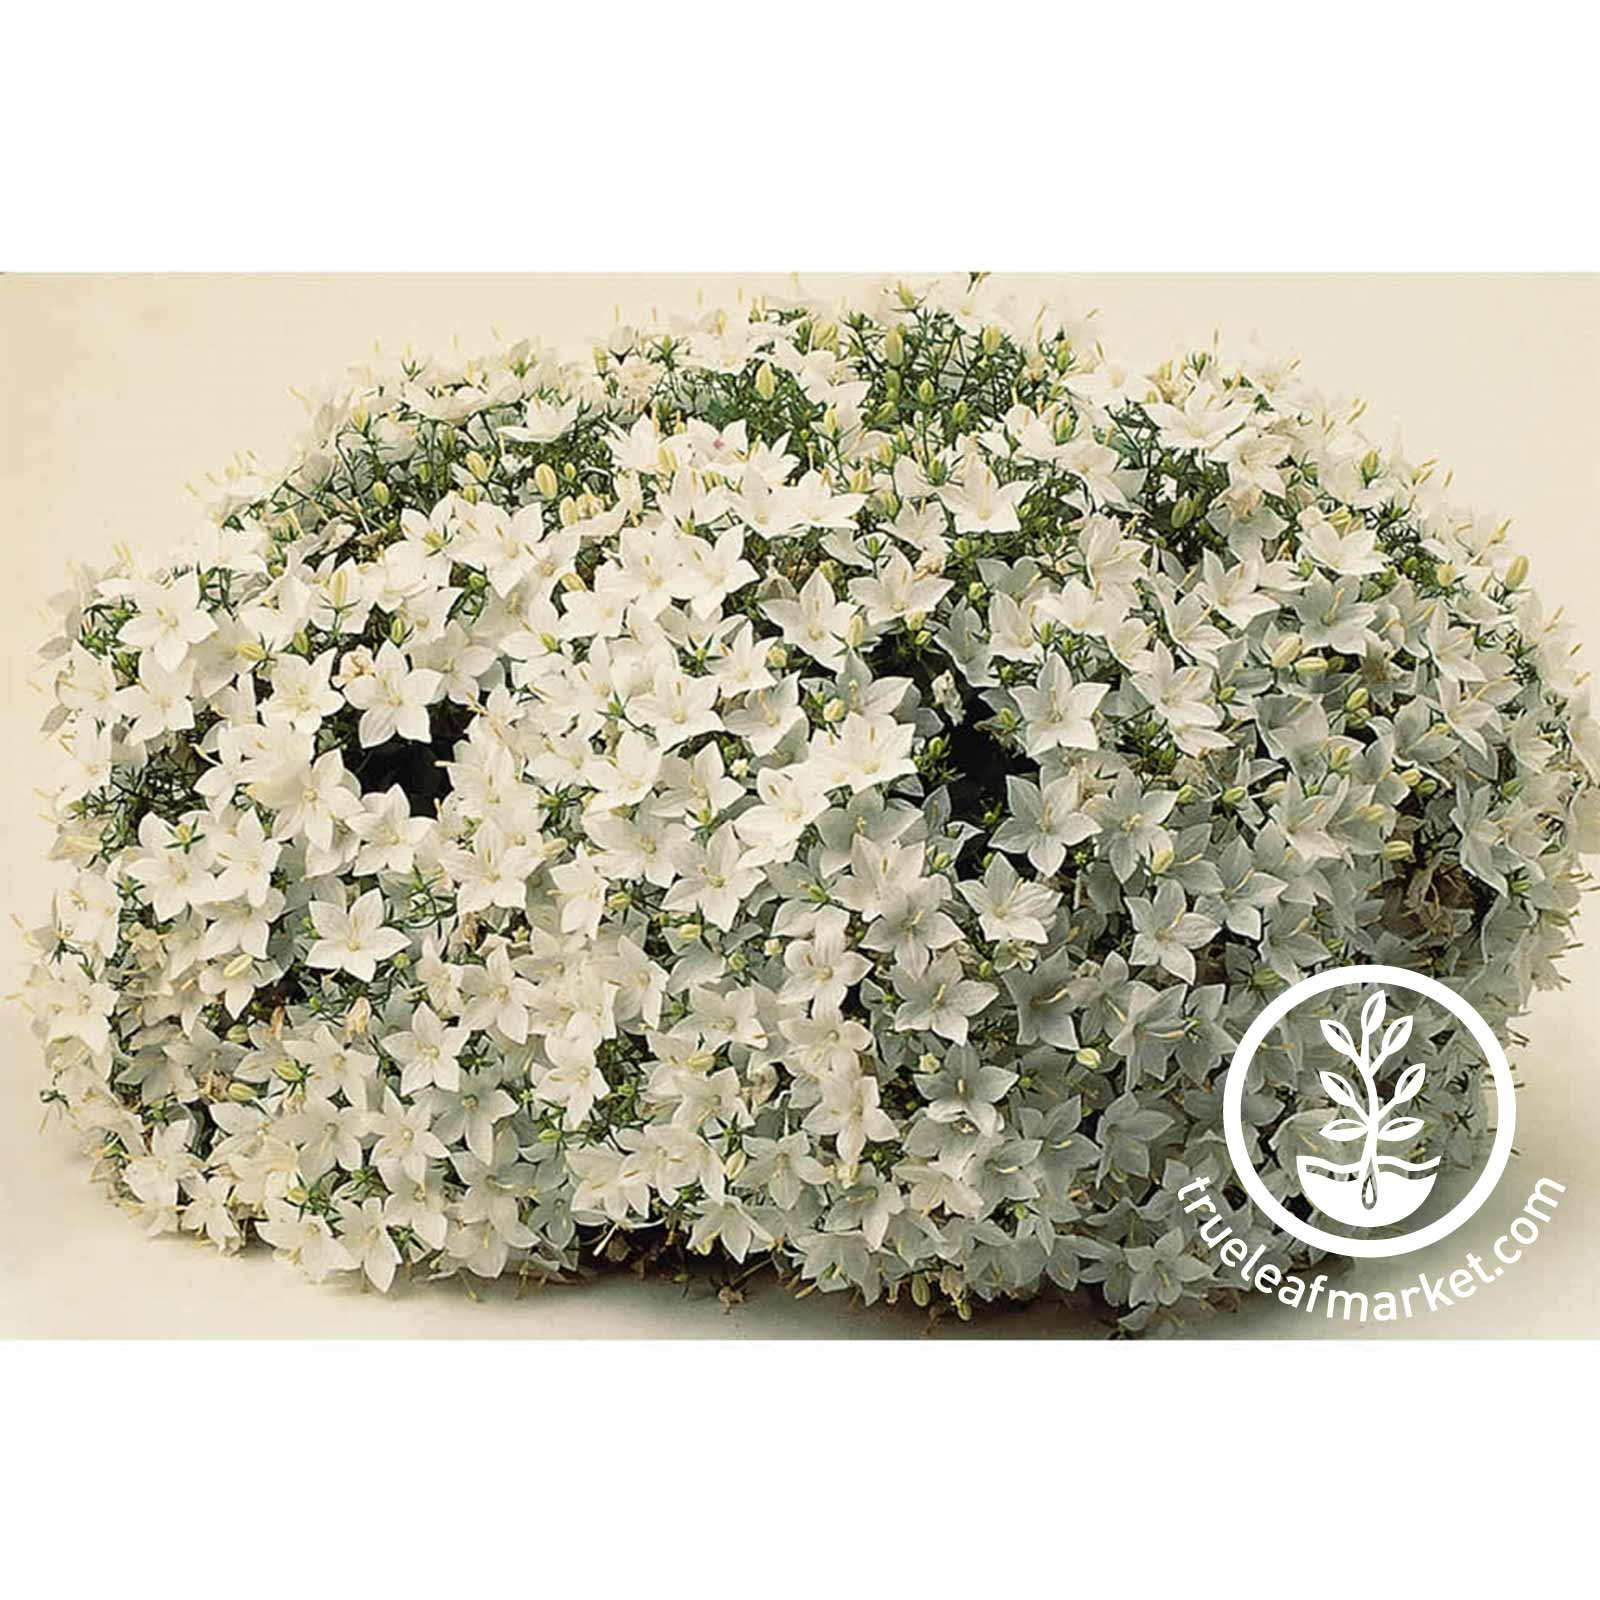 Campanula Clips Series White Flower Seed